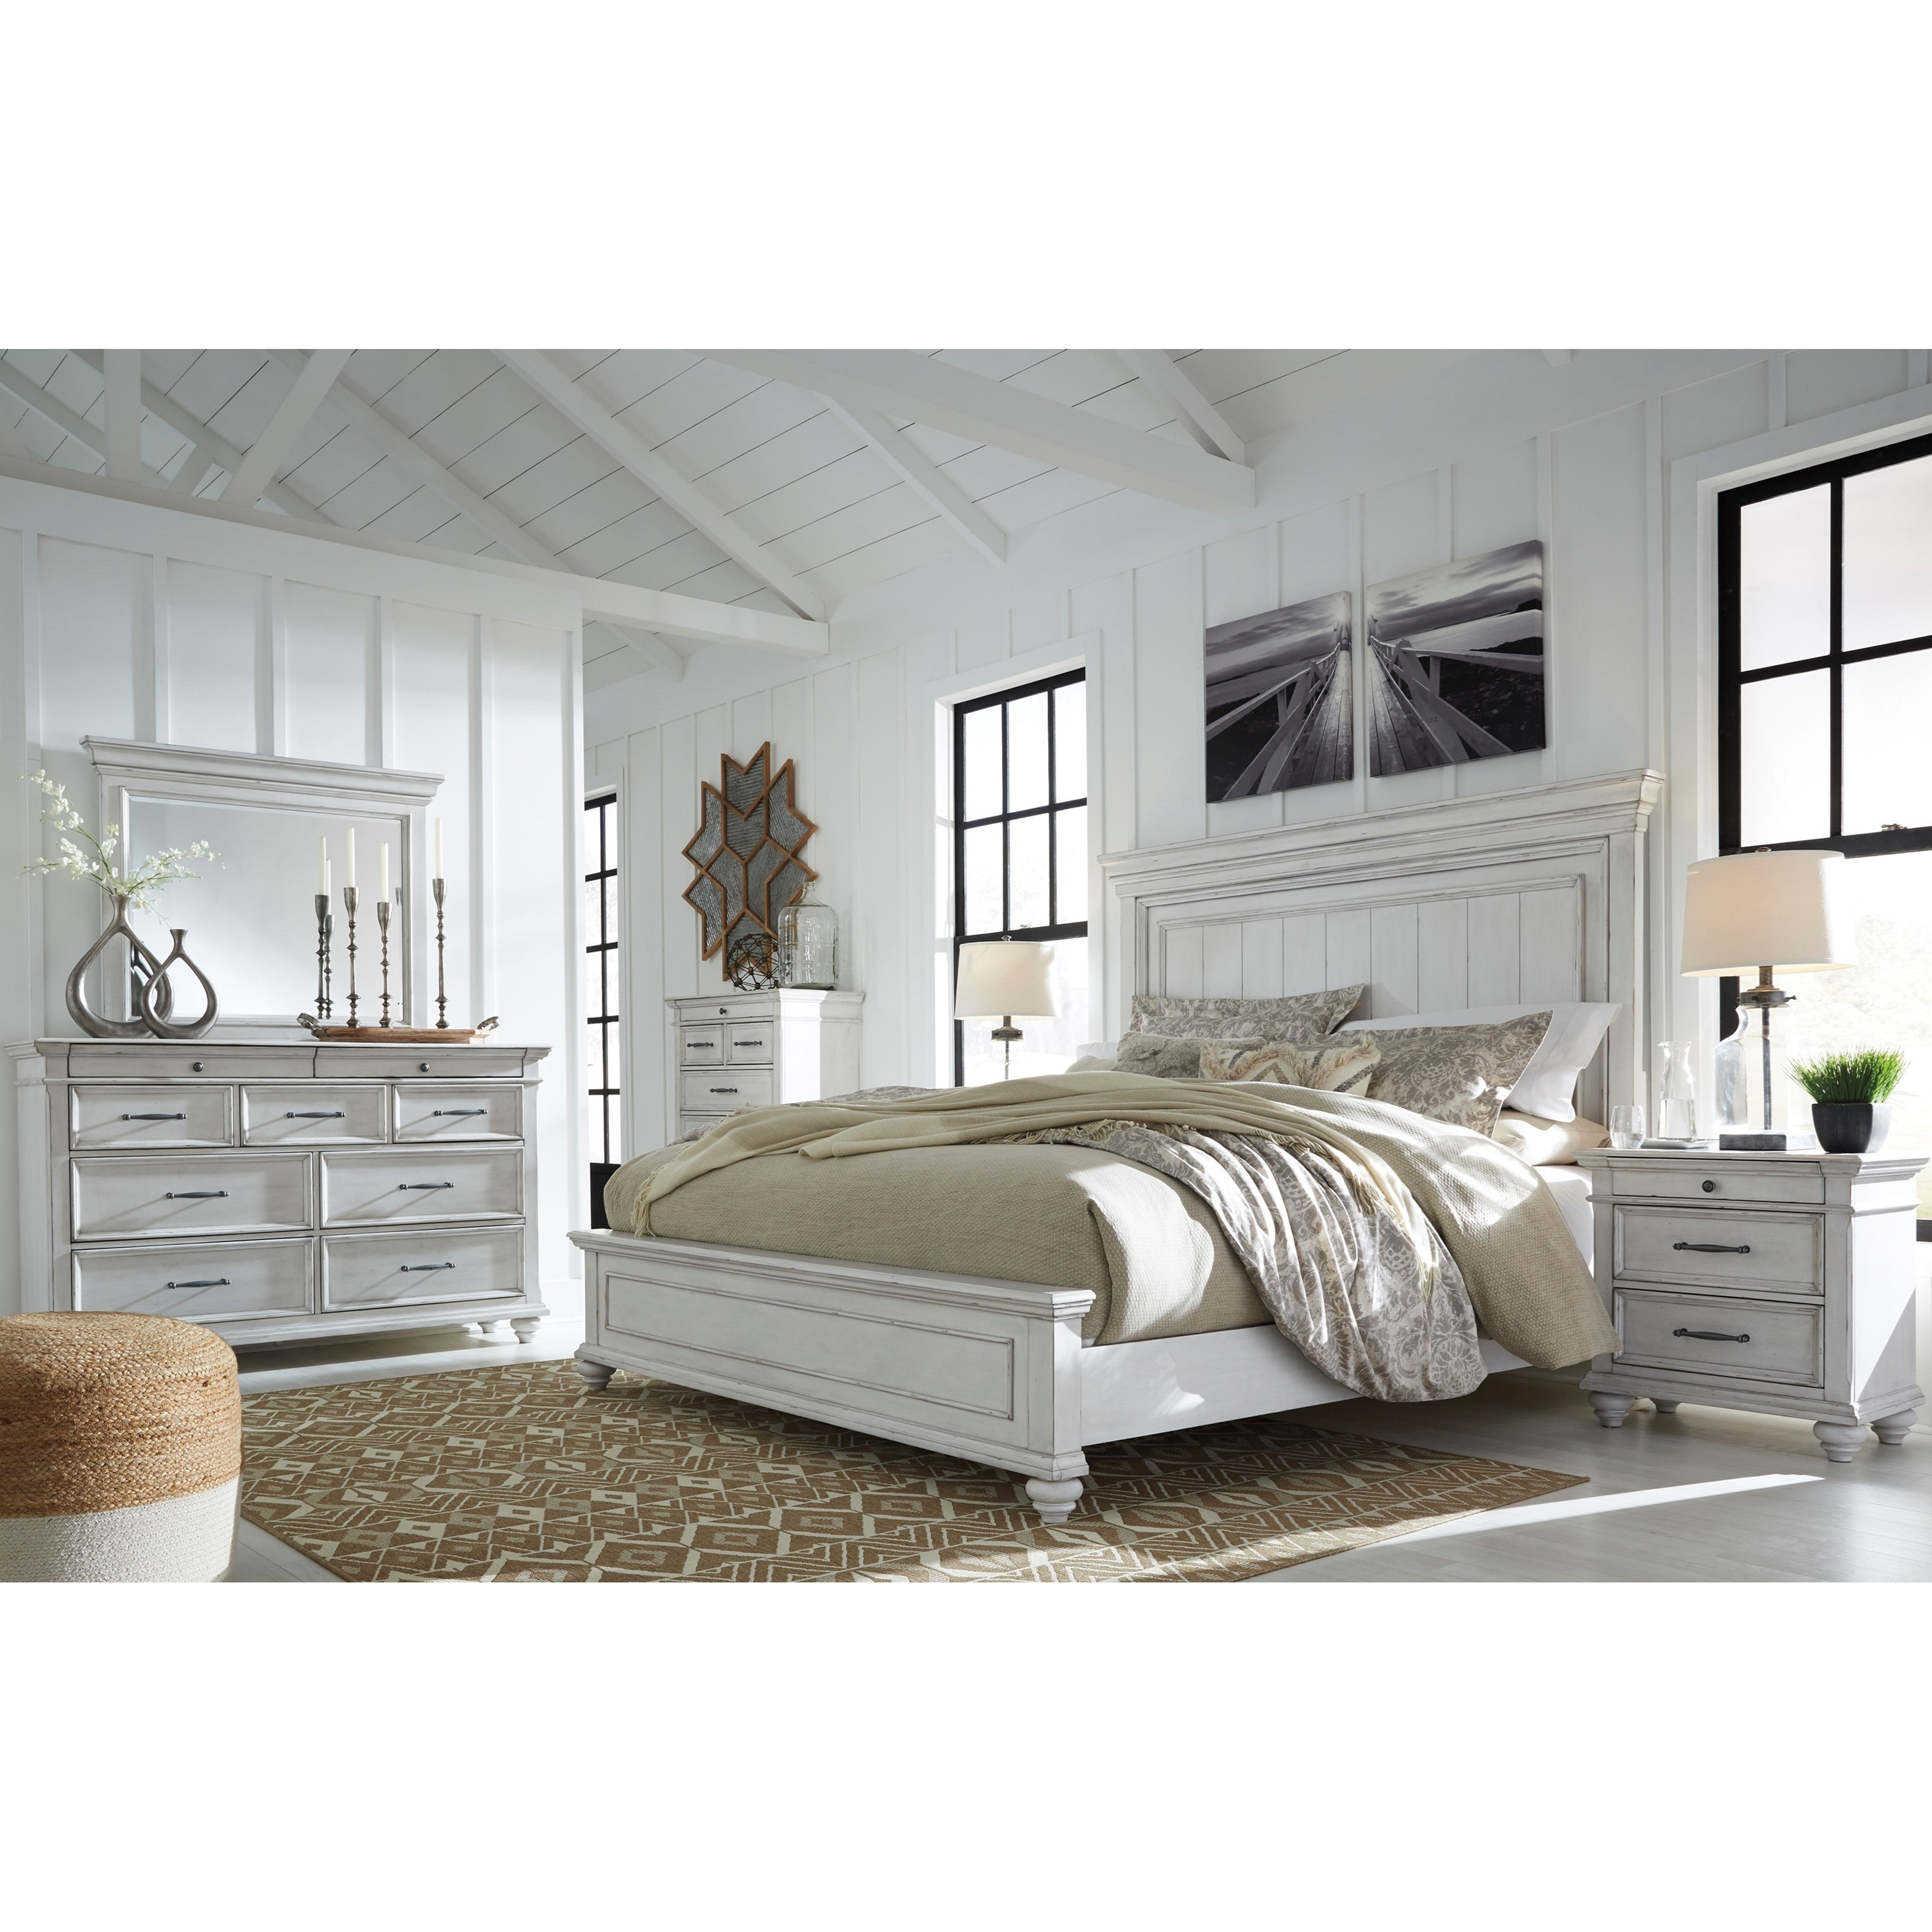 Kanwyn Queen Bedroom Group by Benchcraft at Walker's Furniture